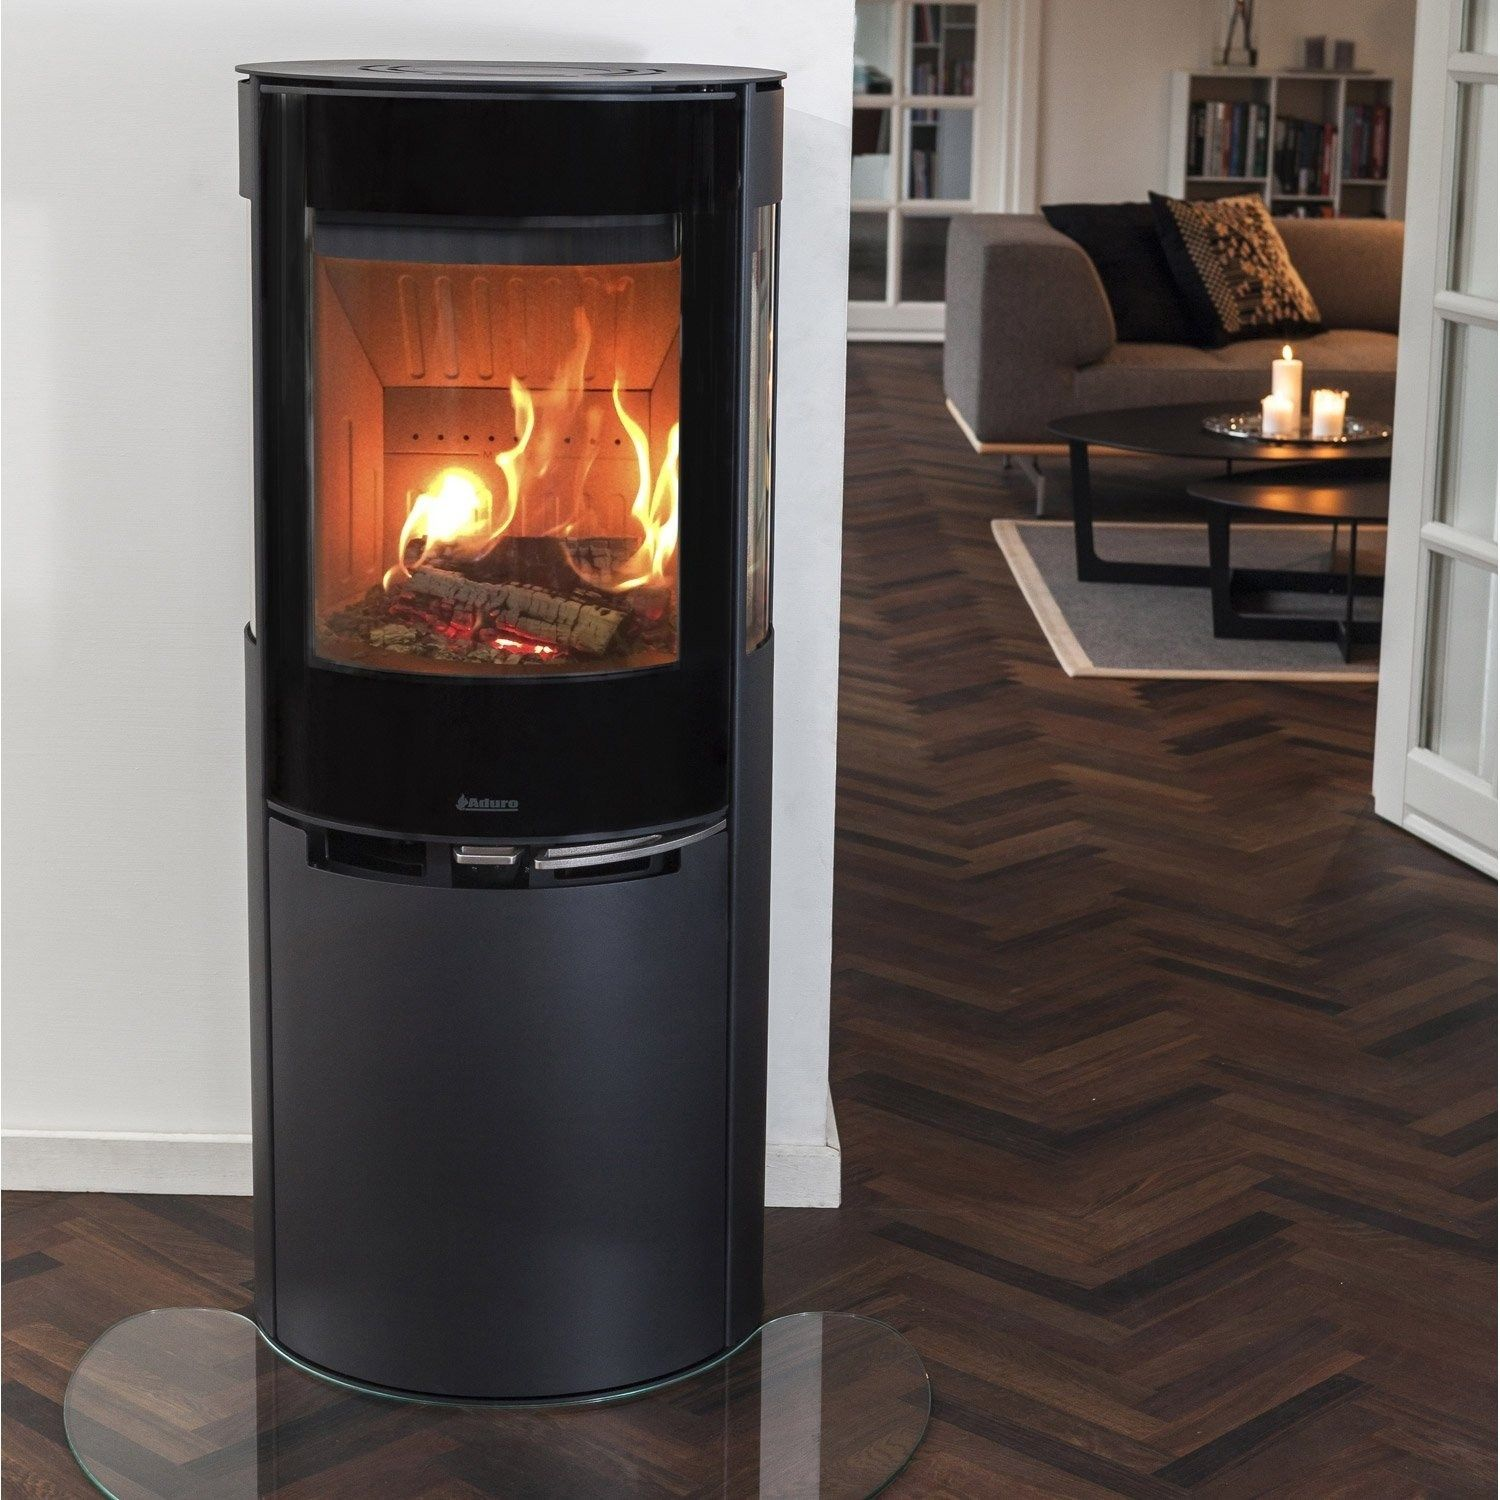 Cheminee Electrique Brico Depot Cheminee Electrique Brico Depot Brico Depot Bricolage Construction Jardin Cuisine Le Brico Wood Burning Stove Home Wood Stove